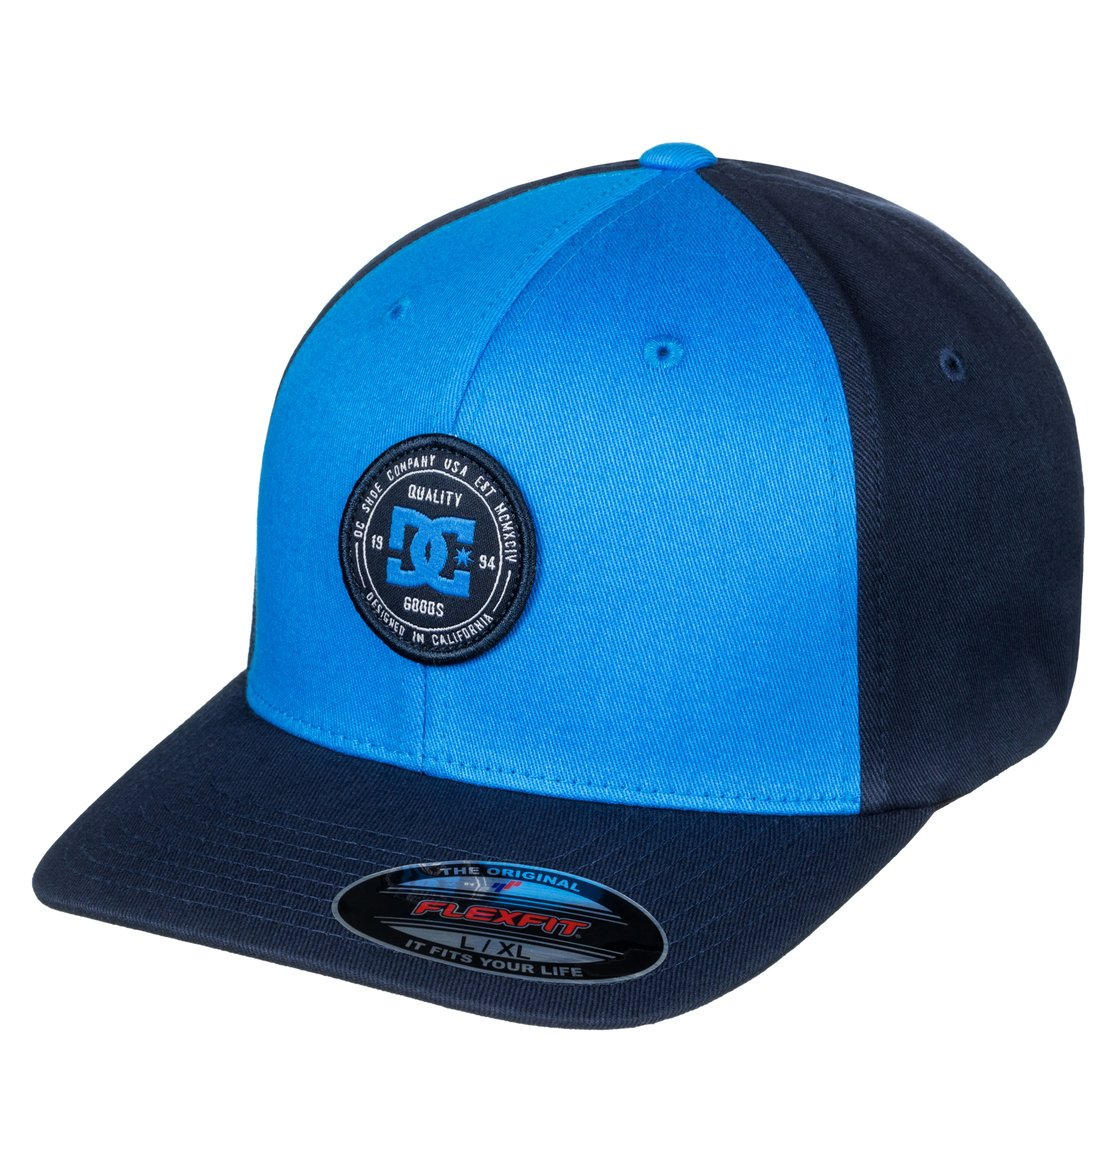 dc shoes Curve Breaker - Cappellino Flexfit da Uomo - Blue - DC Shoes